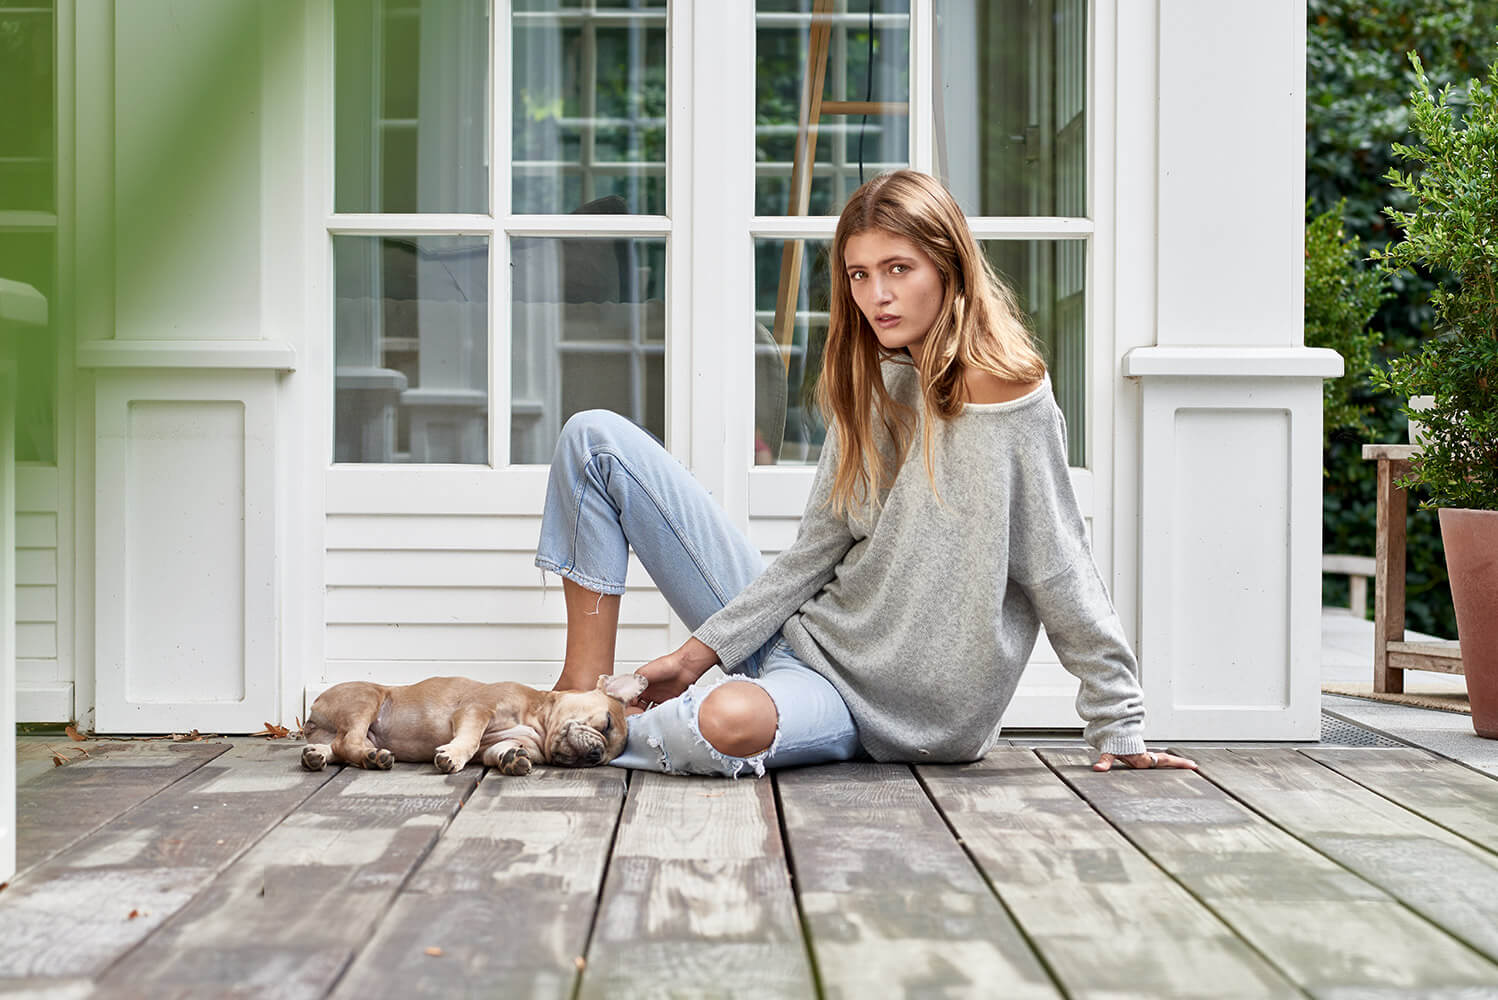 Barefoot Living Lilli Schweiger Fashion